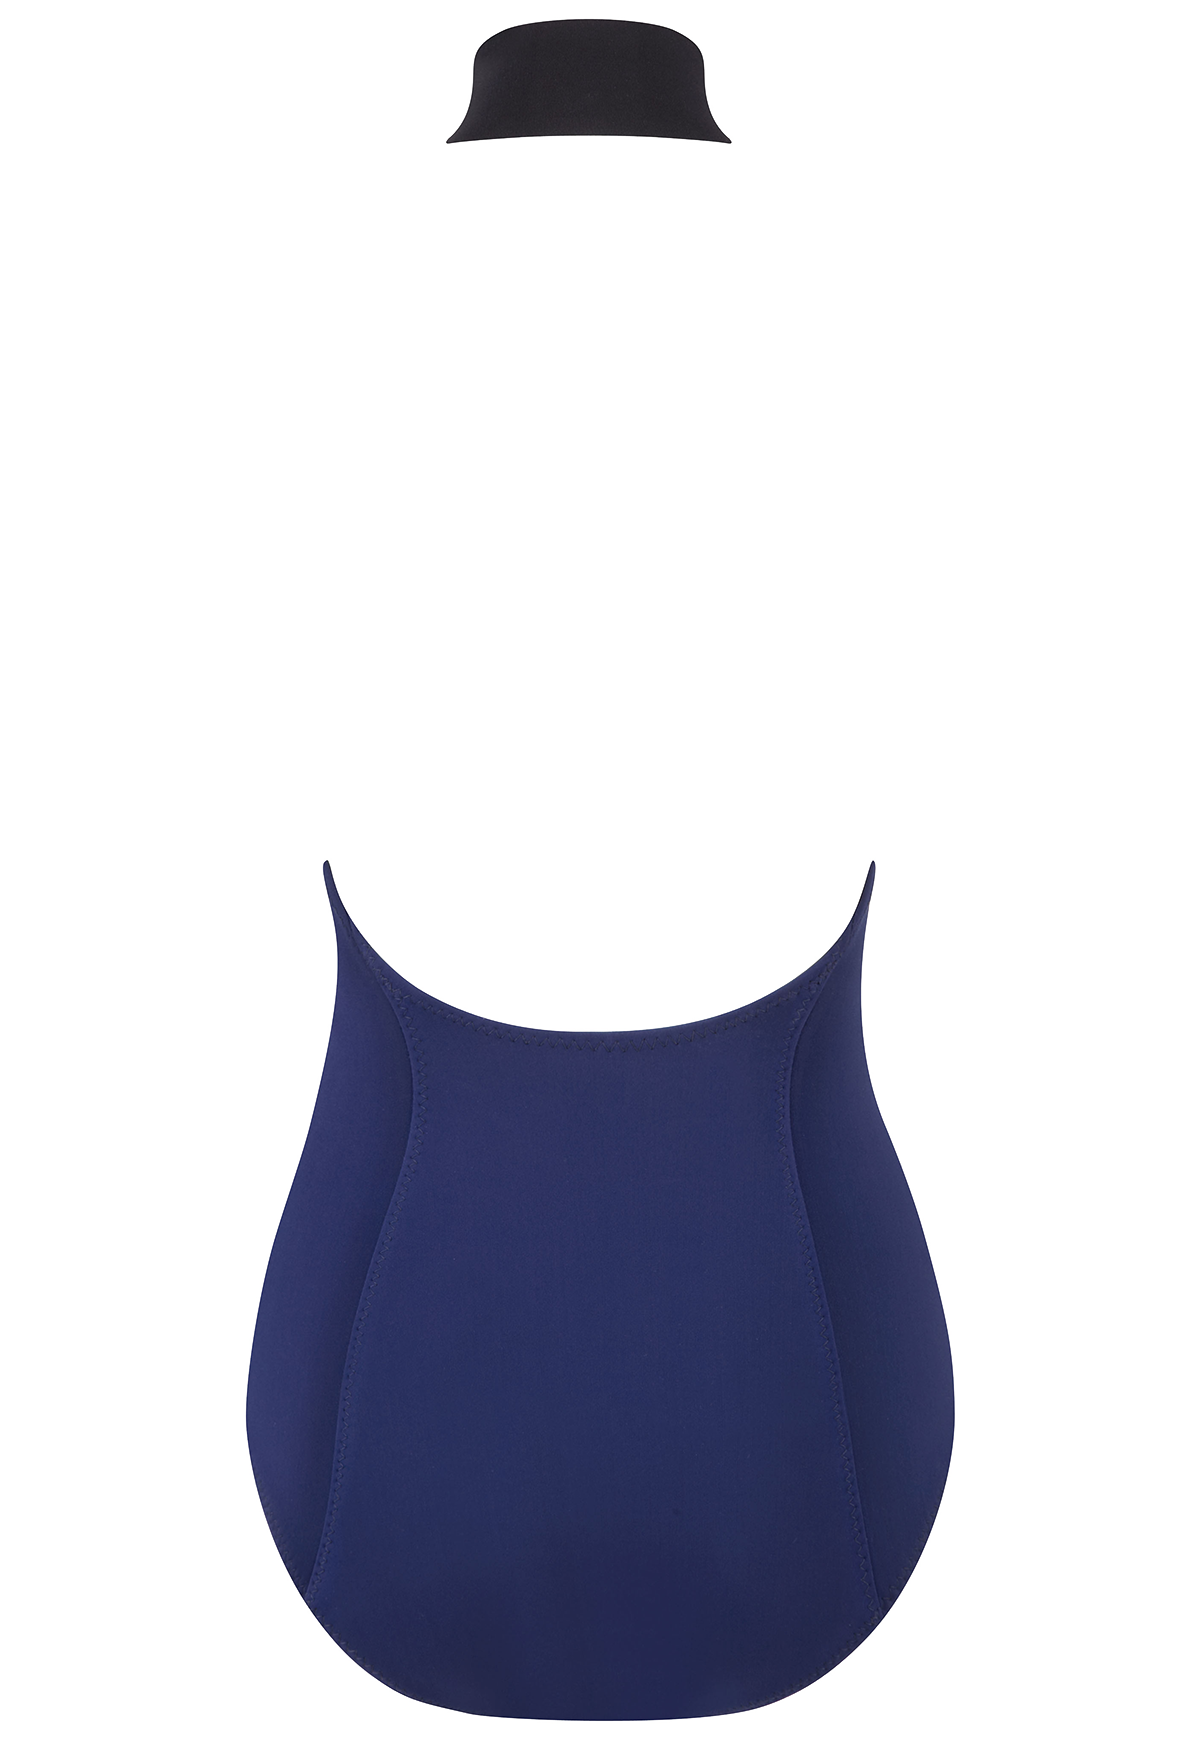 LISA MARIE NAVY BONDED MAILLOT